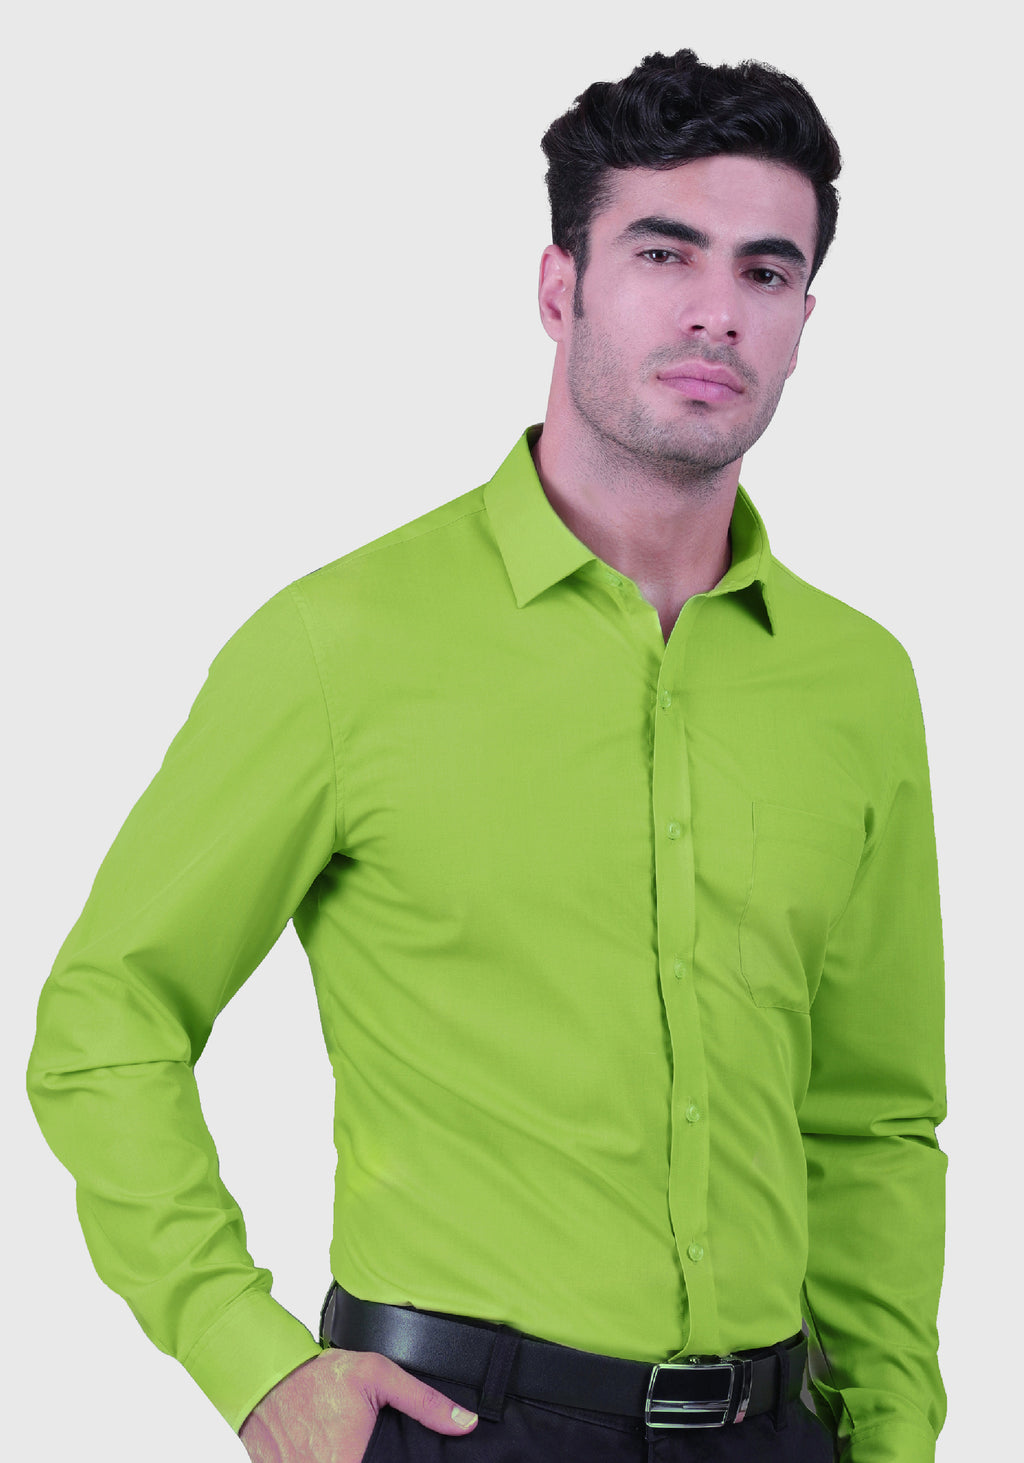 Grinchy Green Shirt (Comfortable Slim Fit)